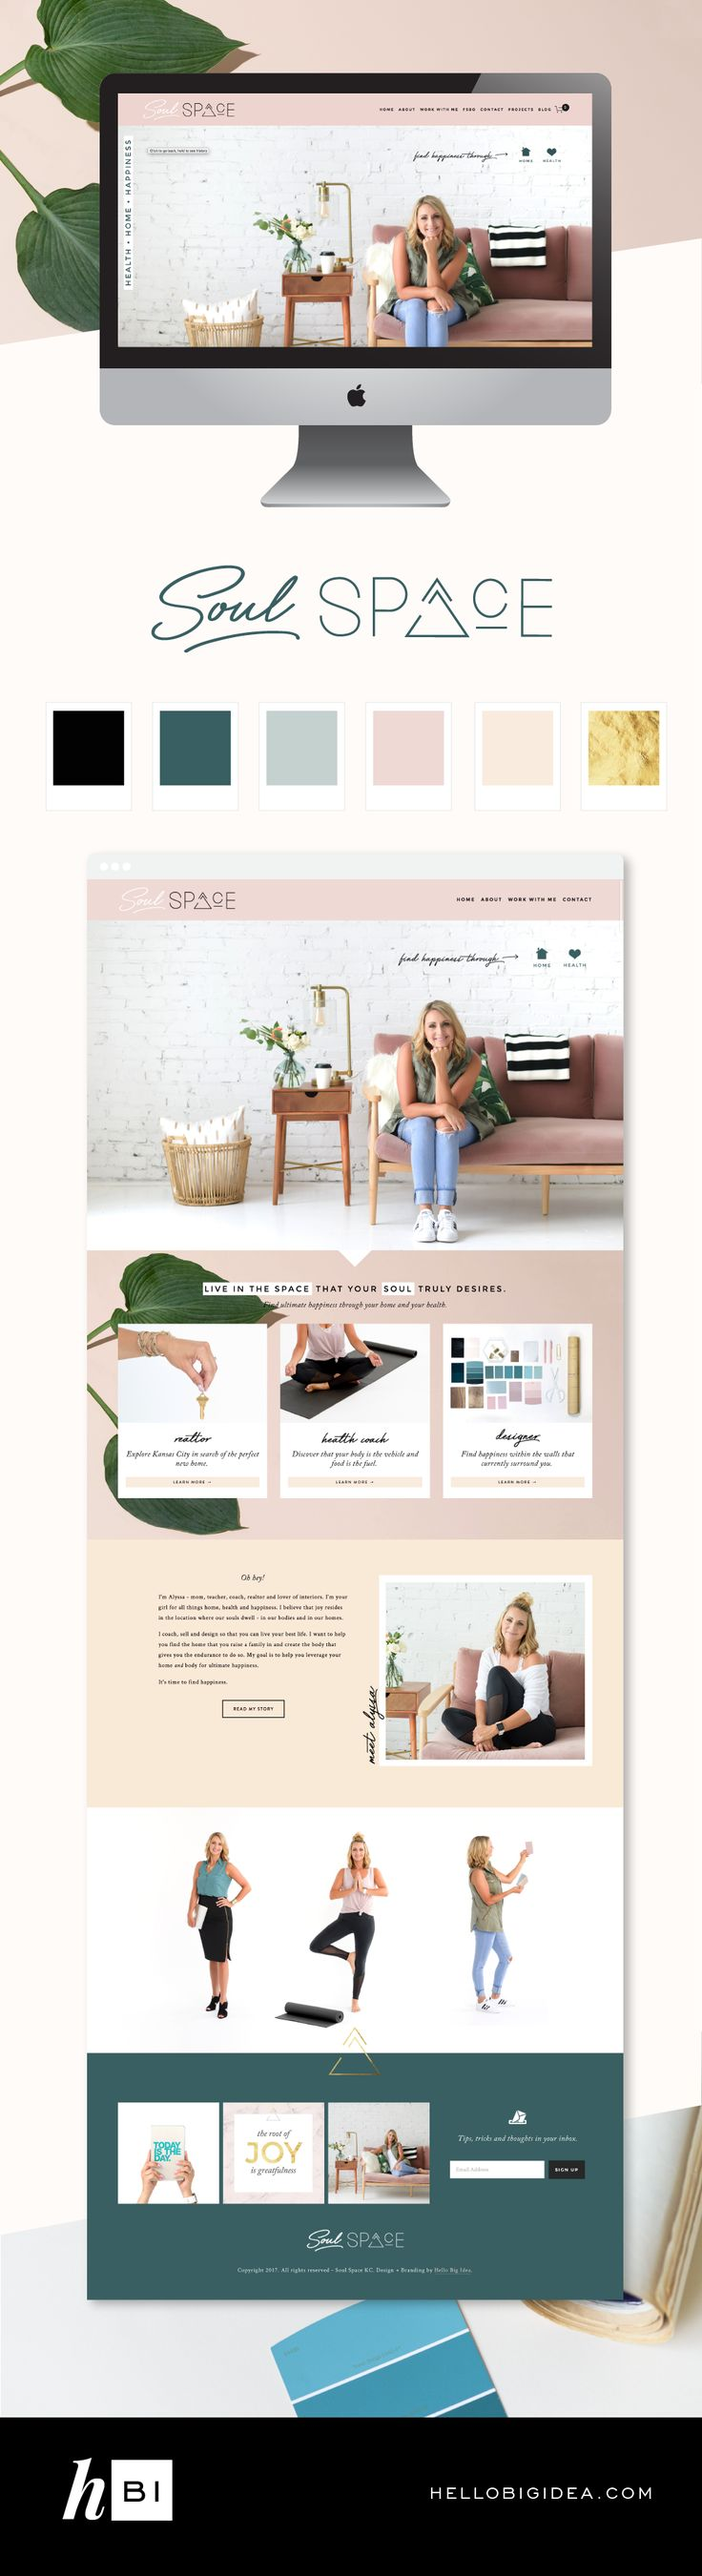 Website design on Squarespace A Total